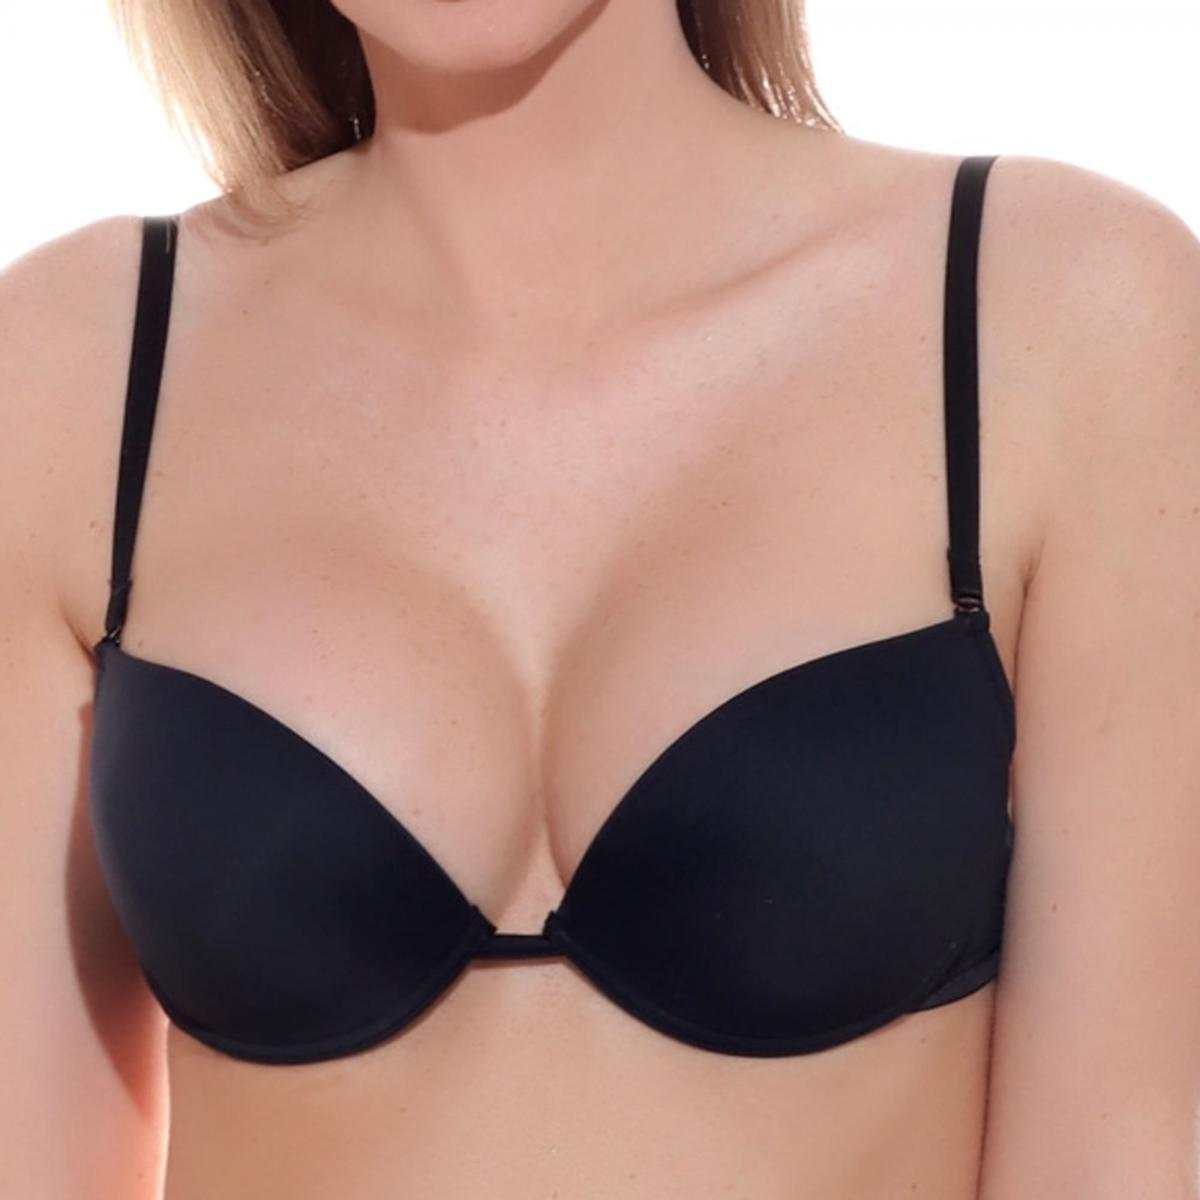 Soutien-gorge push-up armatures Jolidon PERFECT LOOK noir